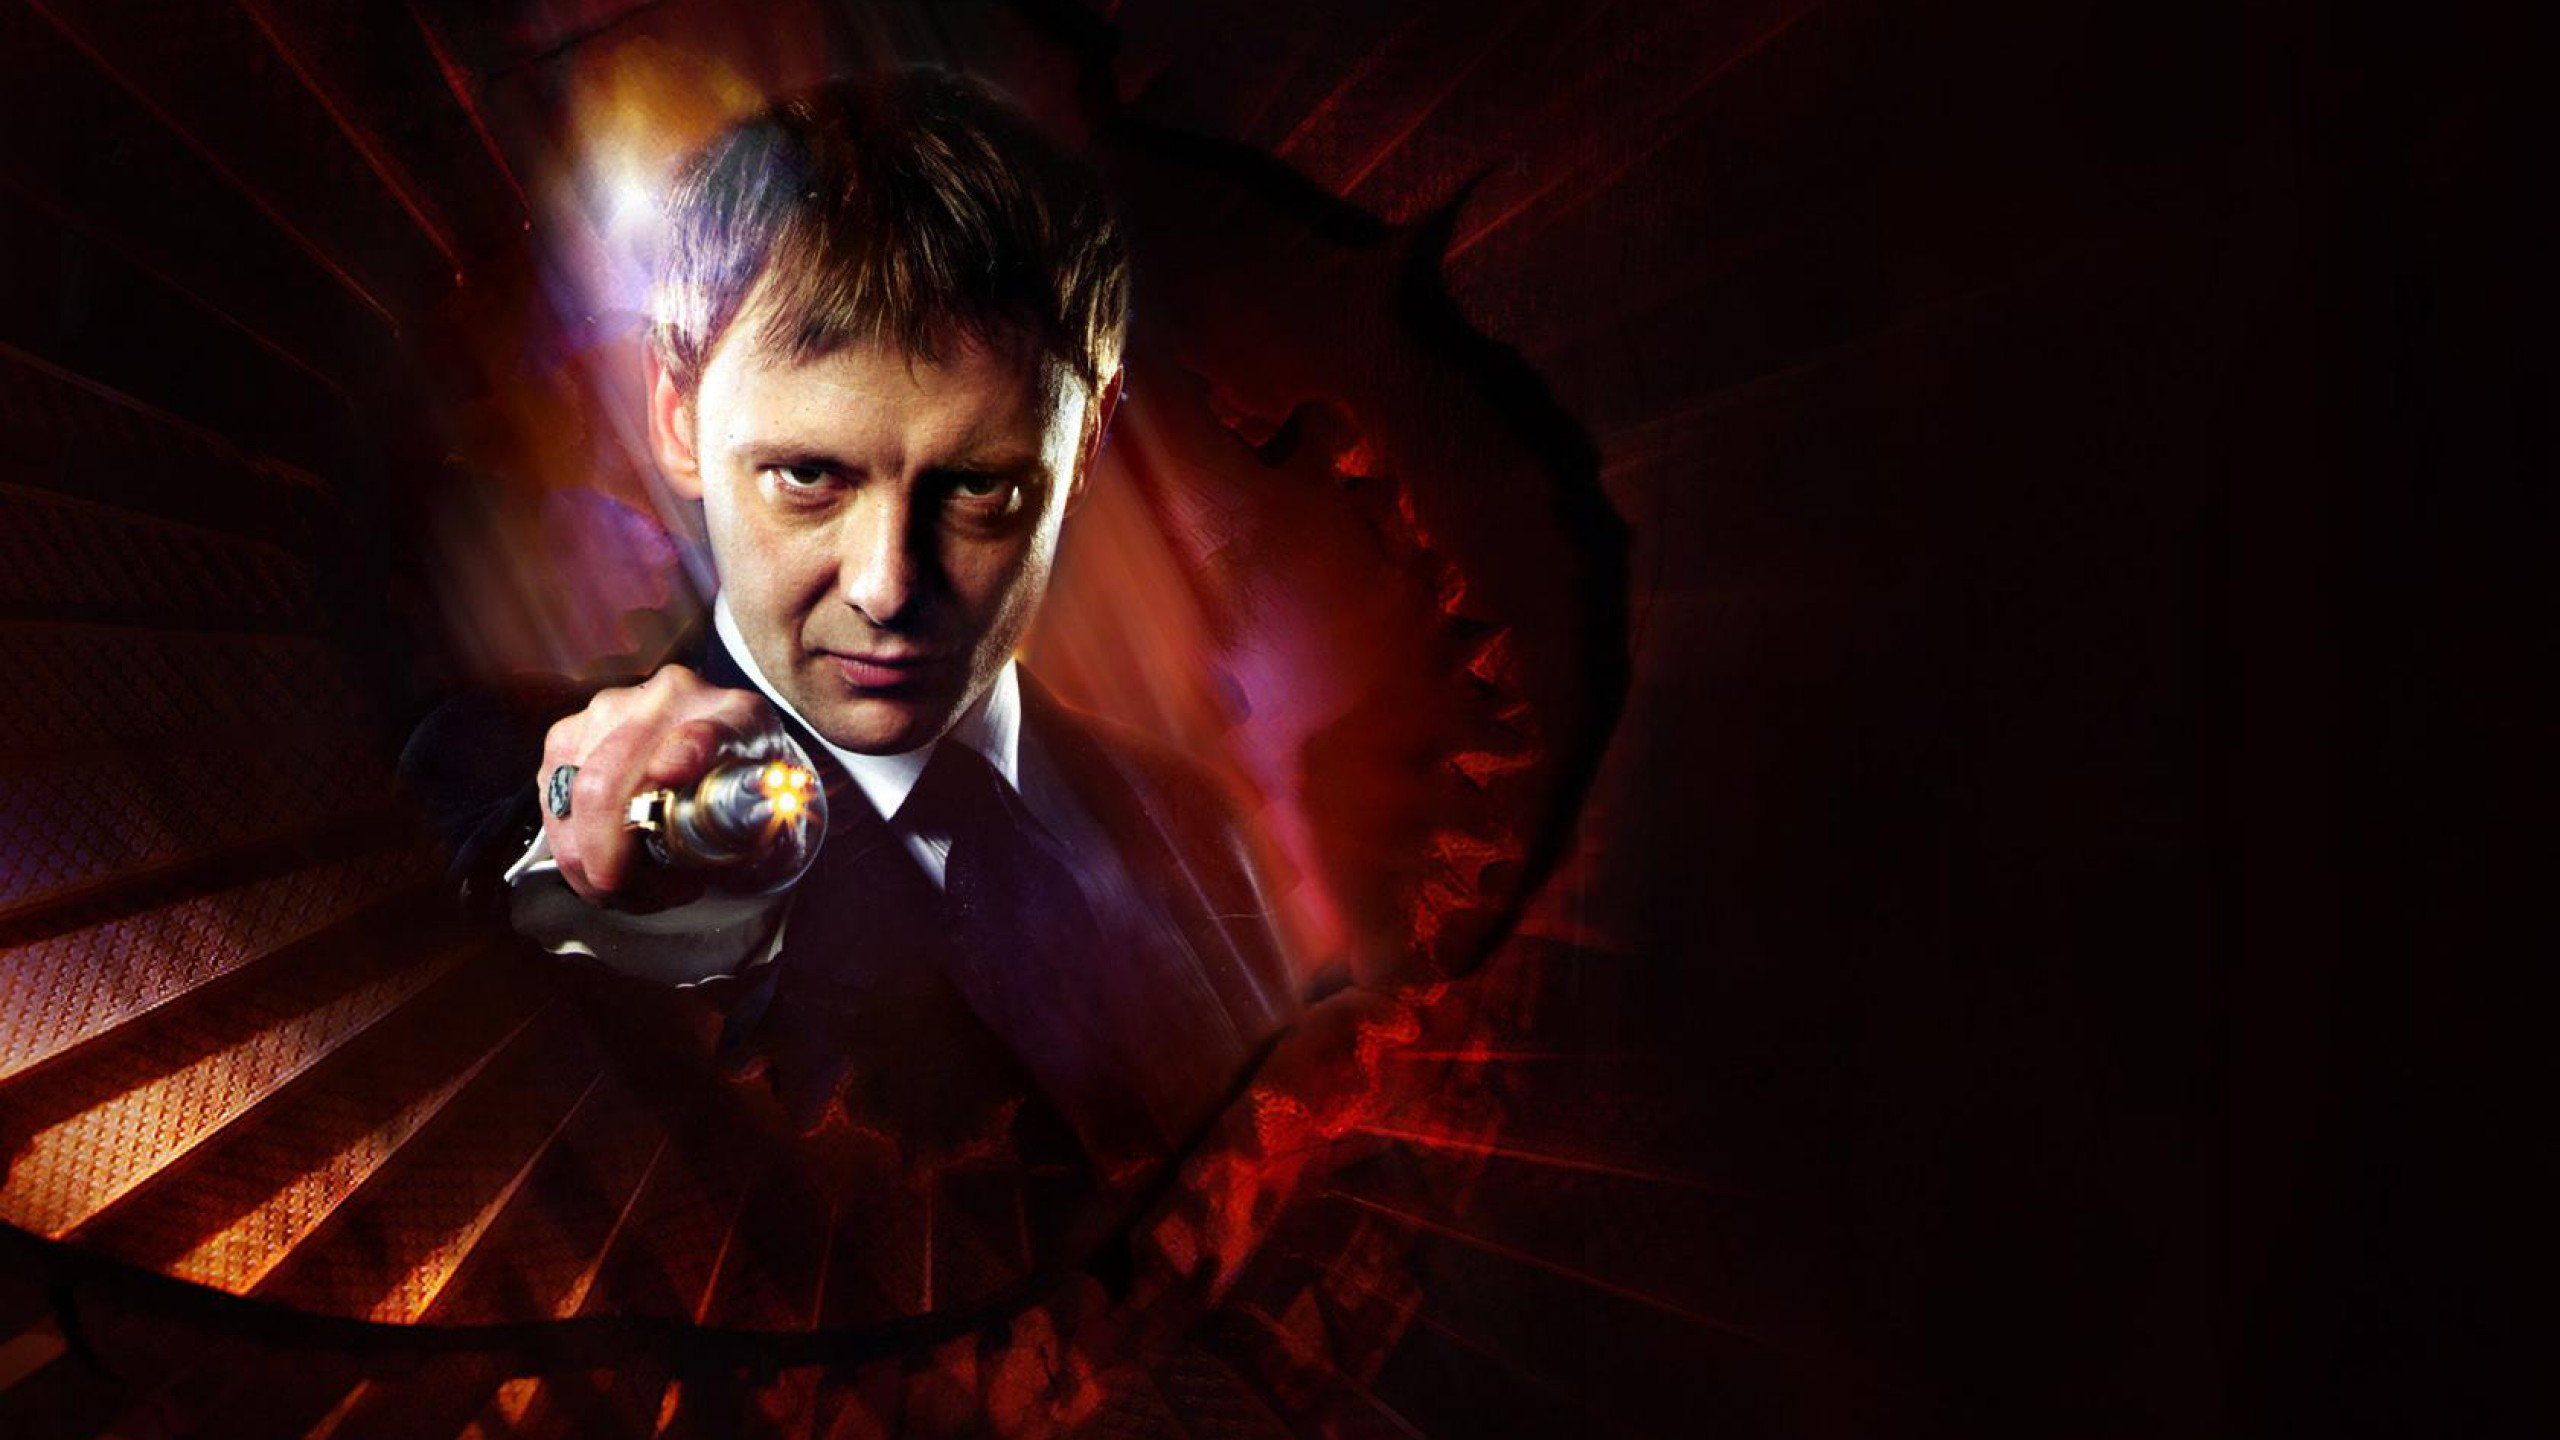 Doctor Who wallpaper 22